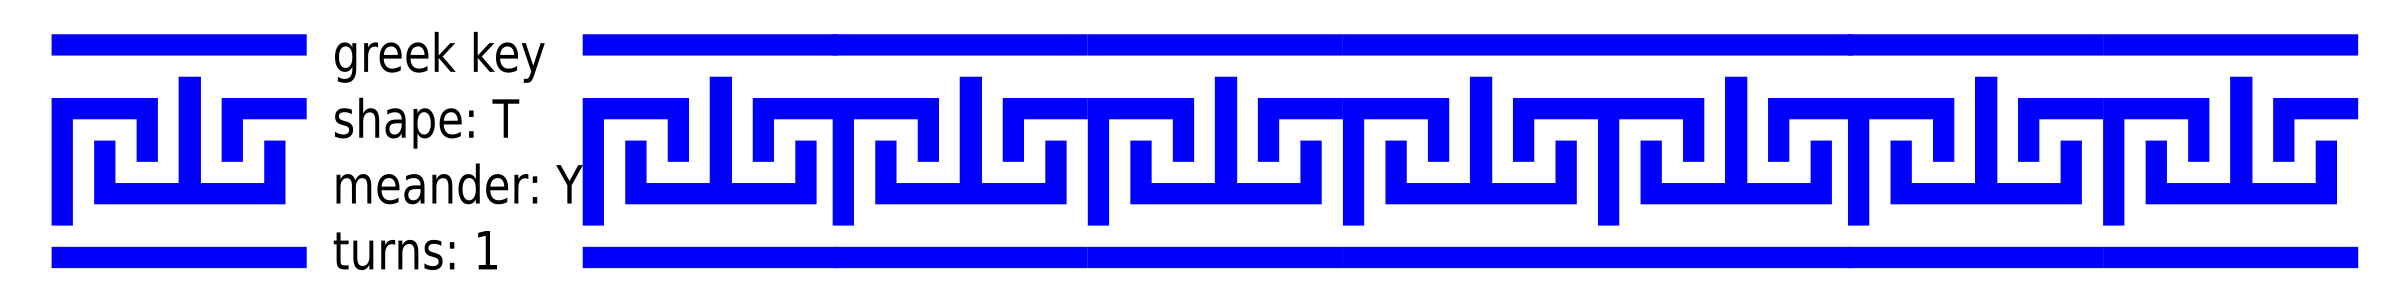 greek key T shape/1 turn/meander/lines by ovideva